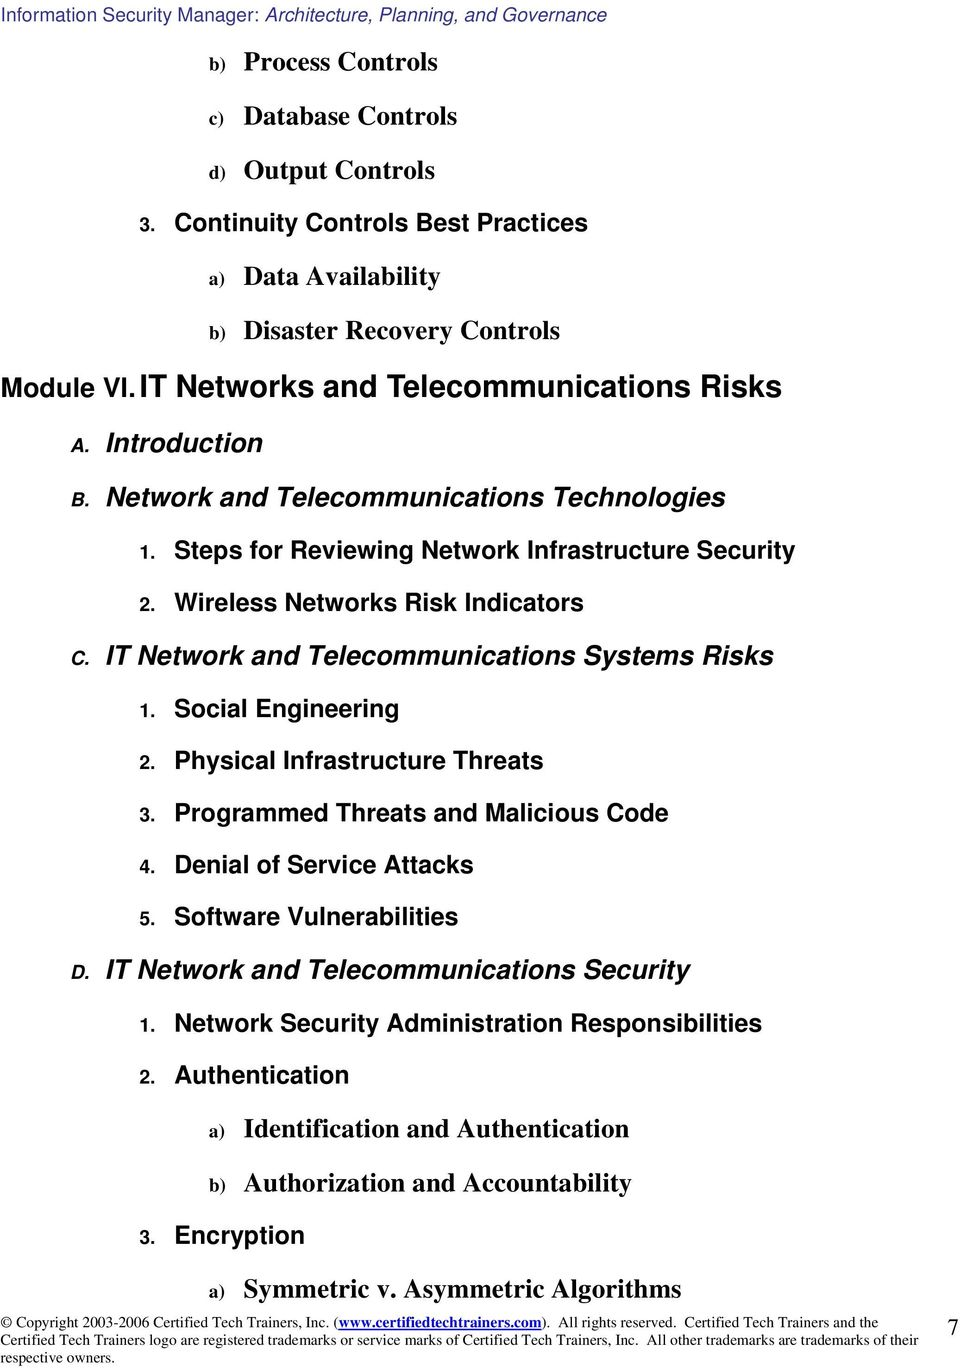 IT Network and Telecommunications Systems Risks 1. Social Engineering 2. Physical Infrastructure Threats 3. Programmed Threats and Malicious Code 4. Denial of Service Attacks 5.